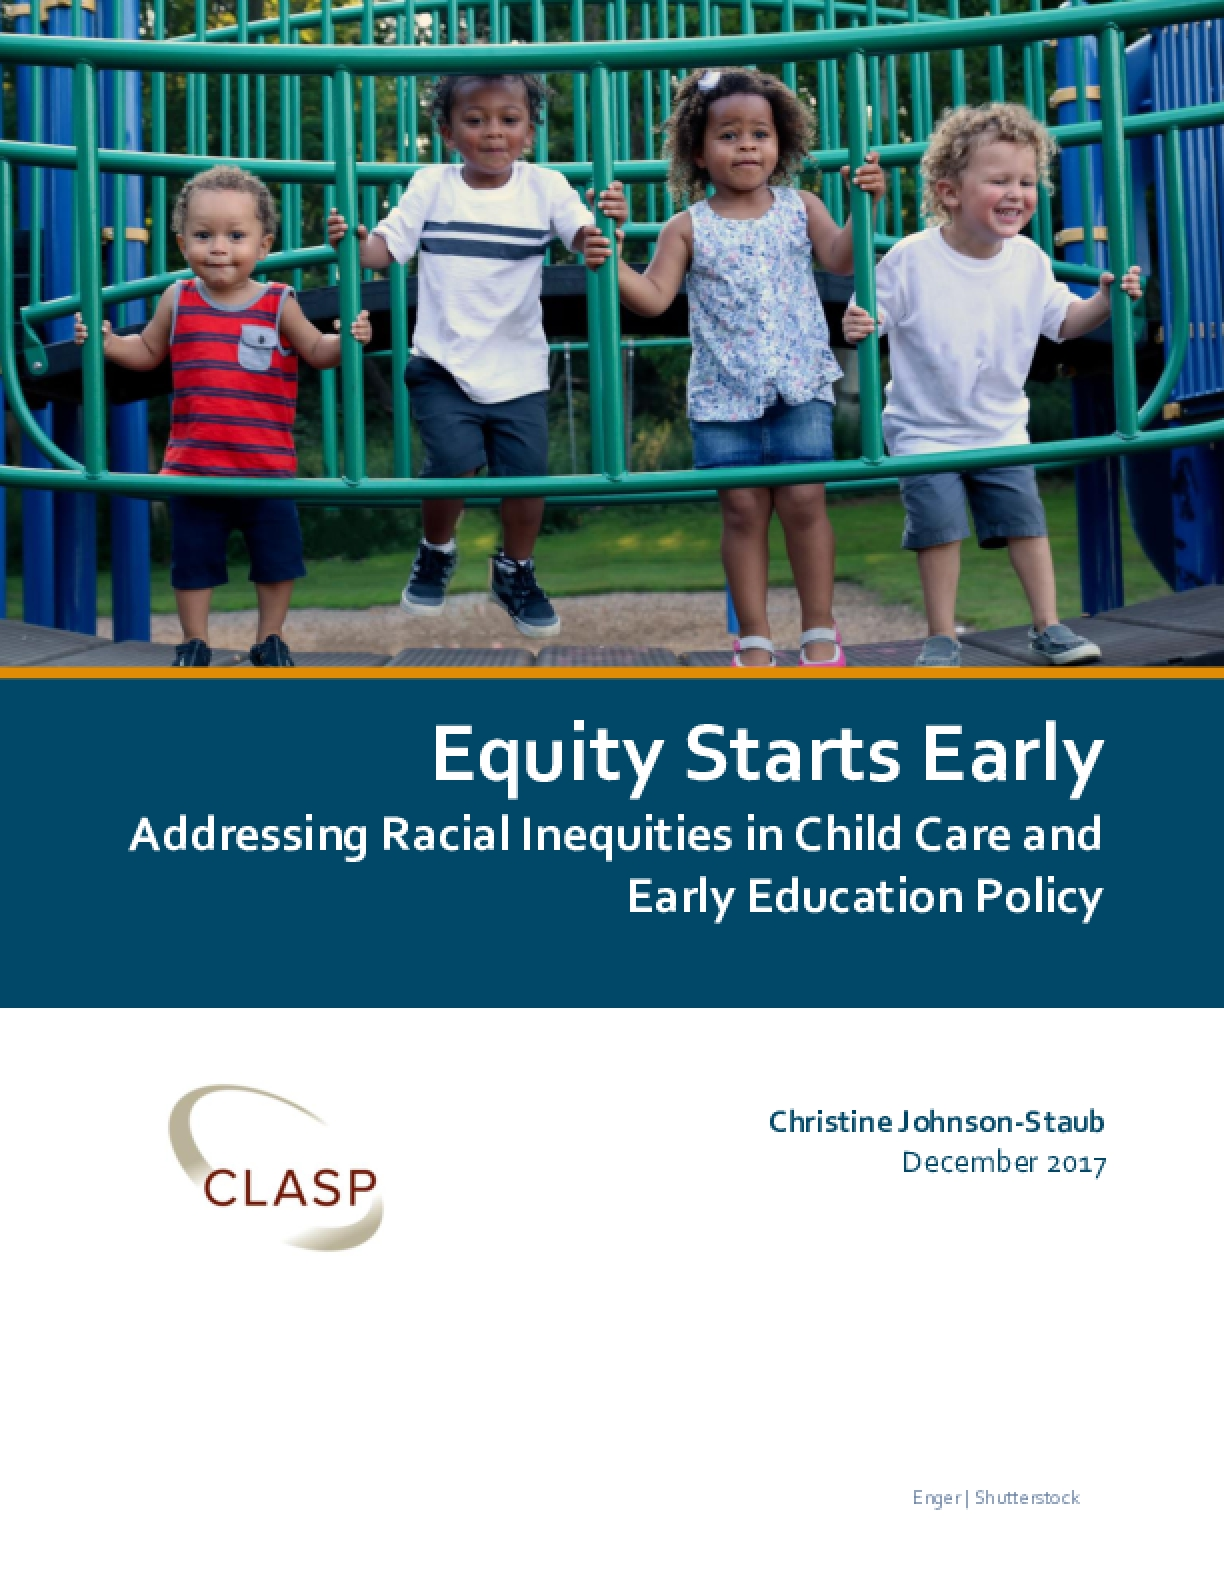 Equity Starts Early: Addressing Racial Inequities in Child Care and Early Education Policy